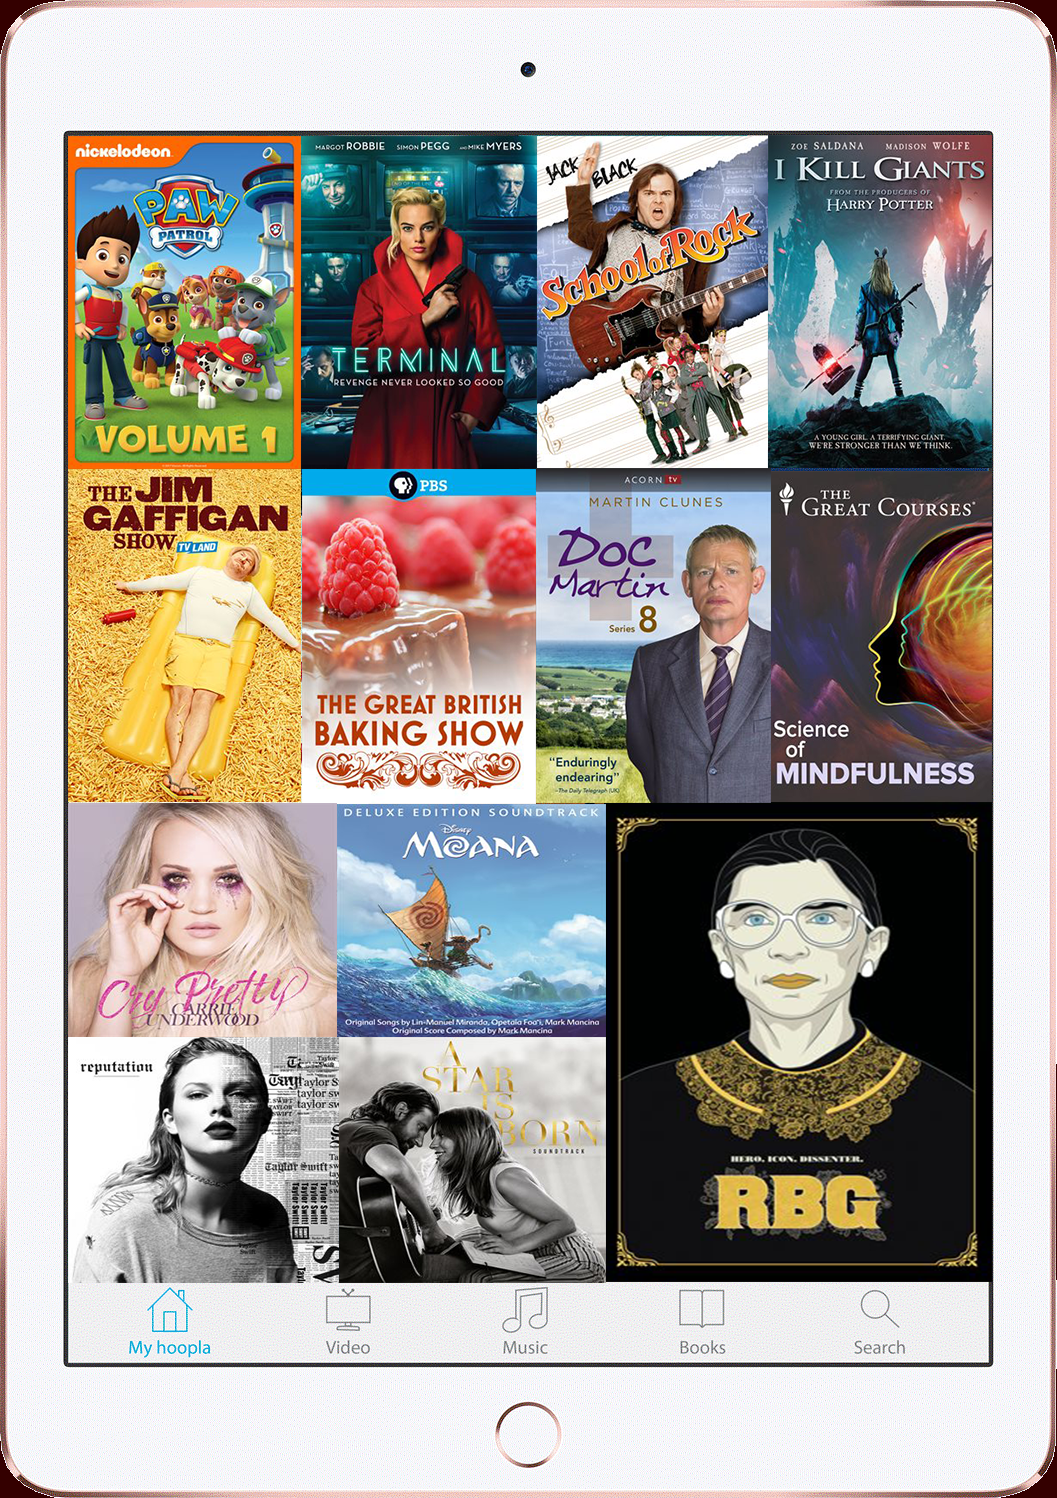 a picture of an iPad with movie, television show, and music album images in a collage on the screen